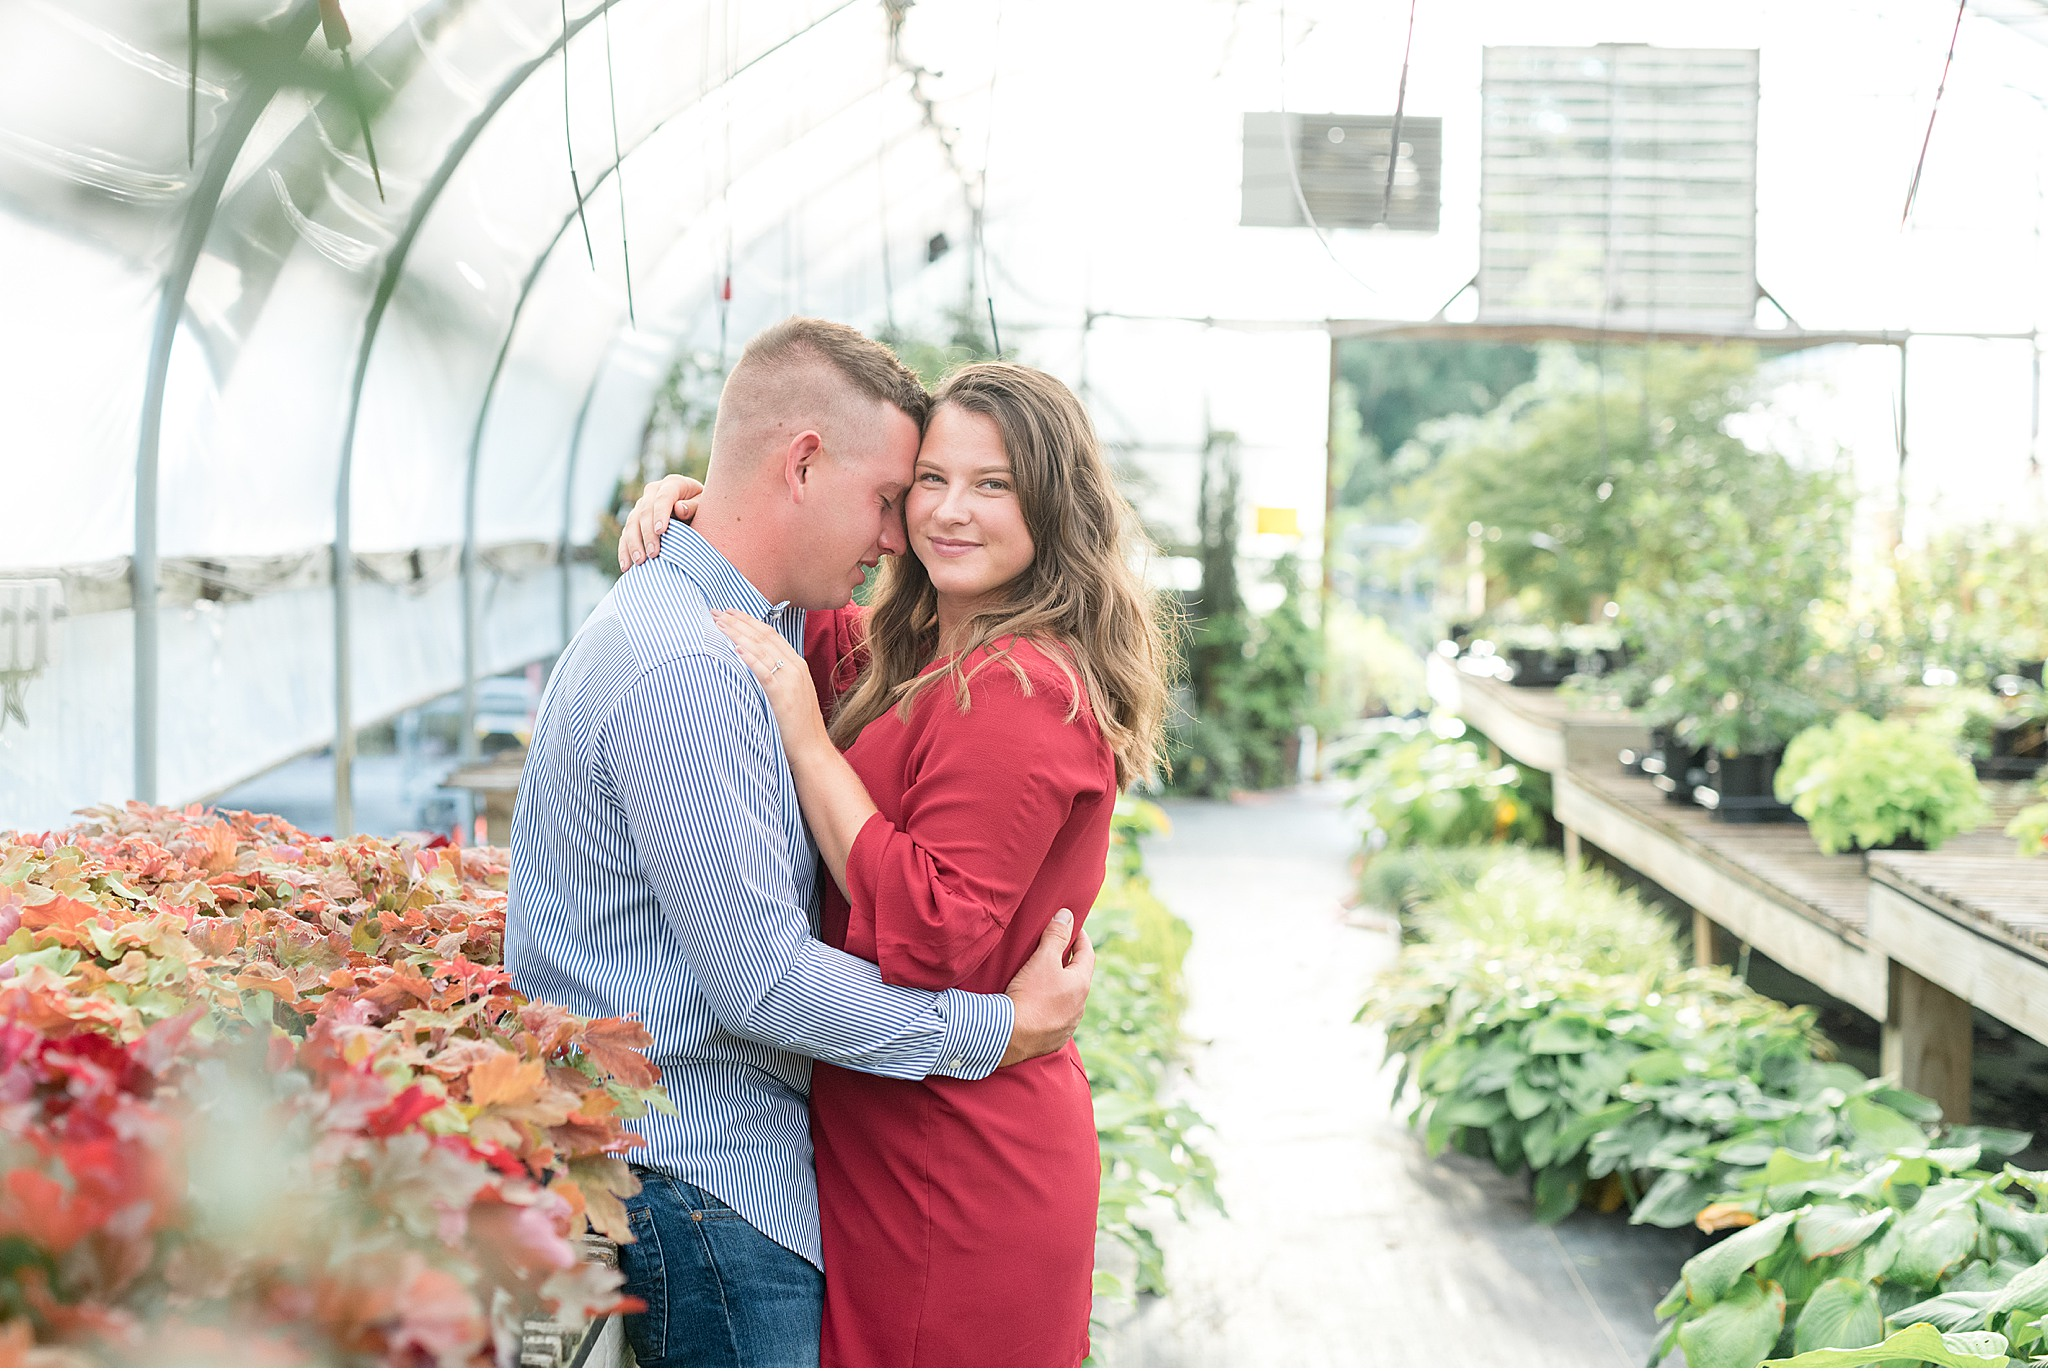 Tudbinks Greenhouse Lancaster County Greenhouse Engagement Session Photography